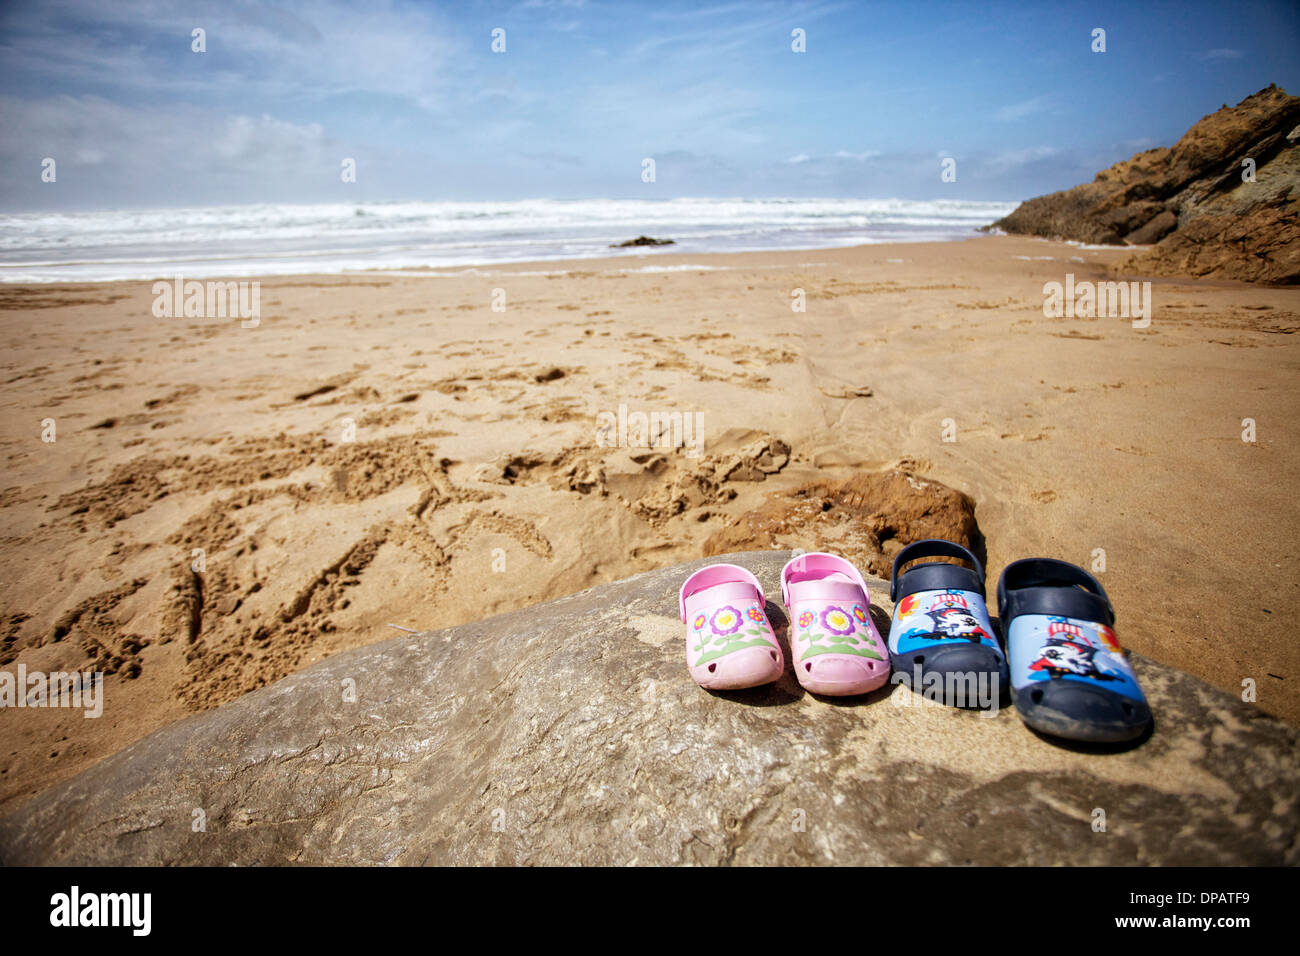 d990db93c Childrens  crocs  shoes on a rock on a beach with waves and blue skies